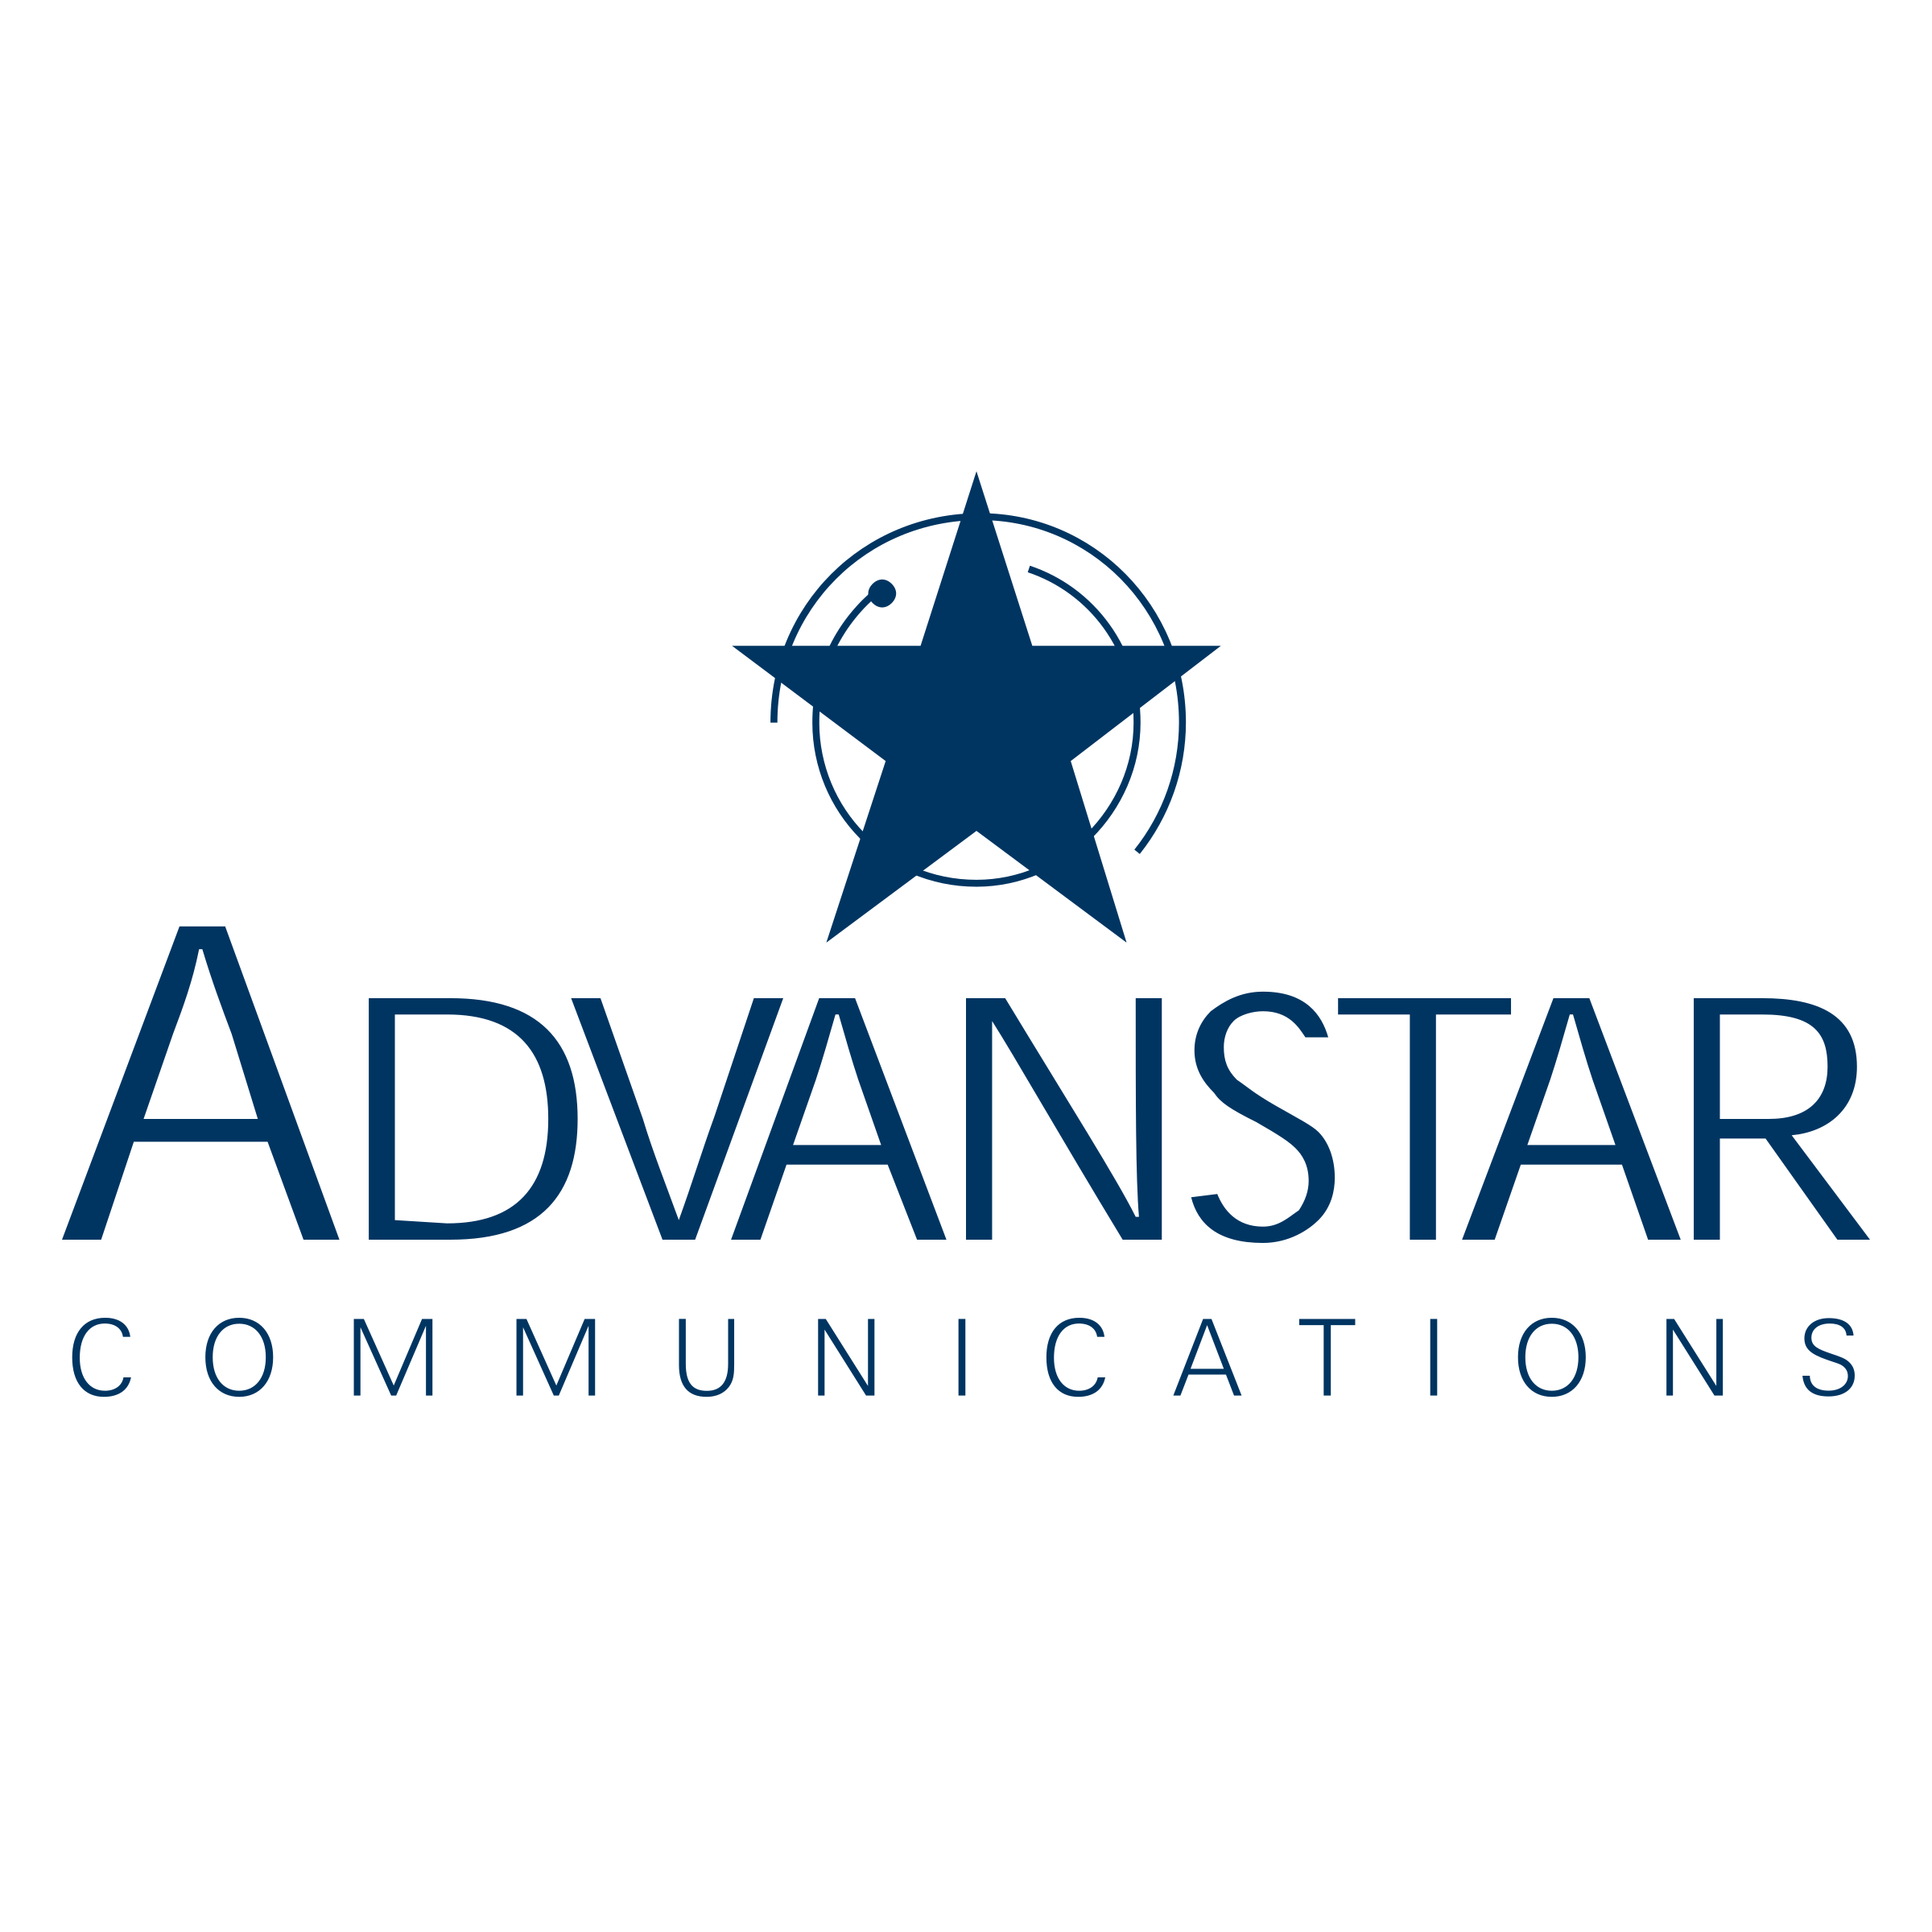 Advanstar Communications logo